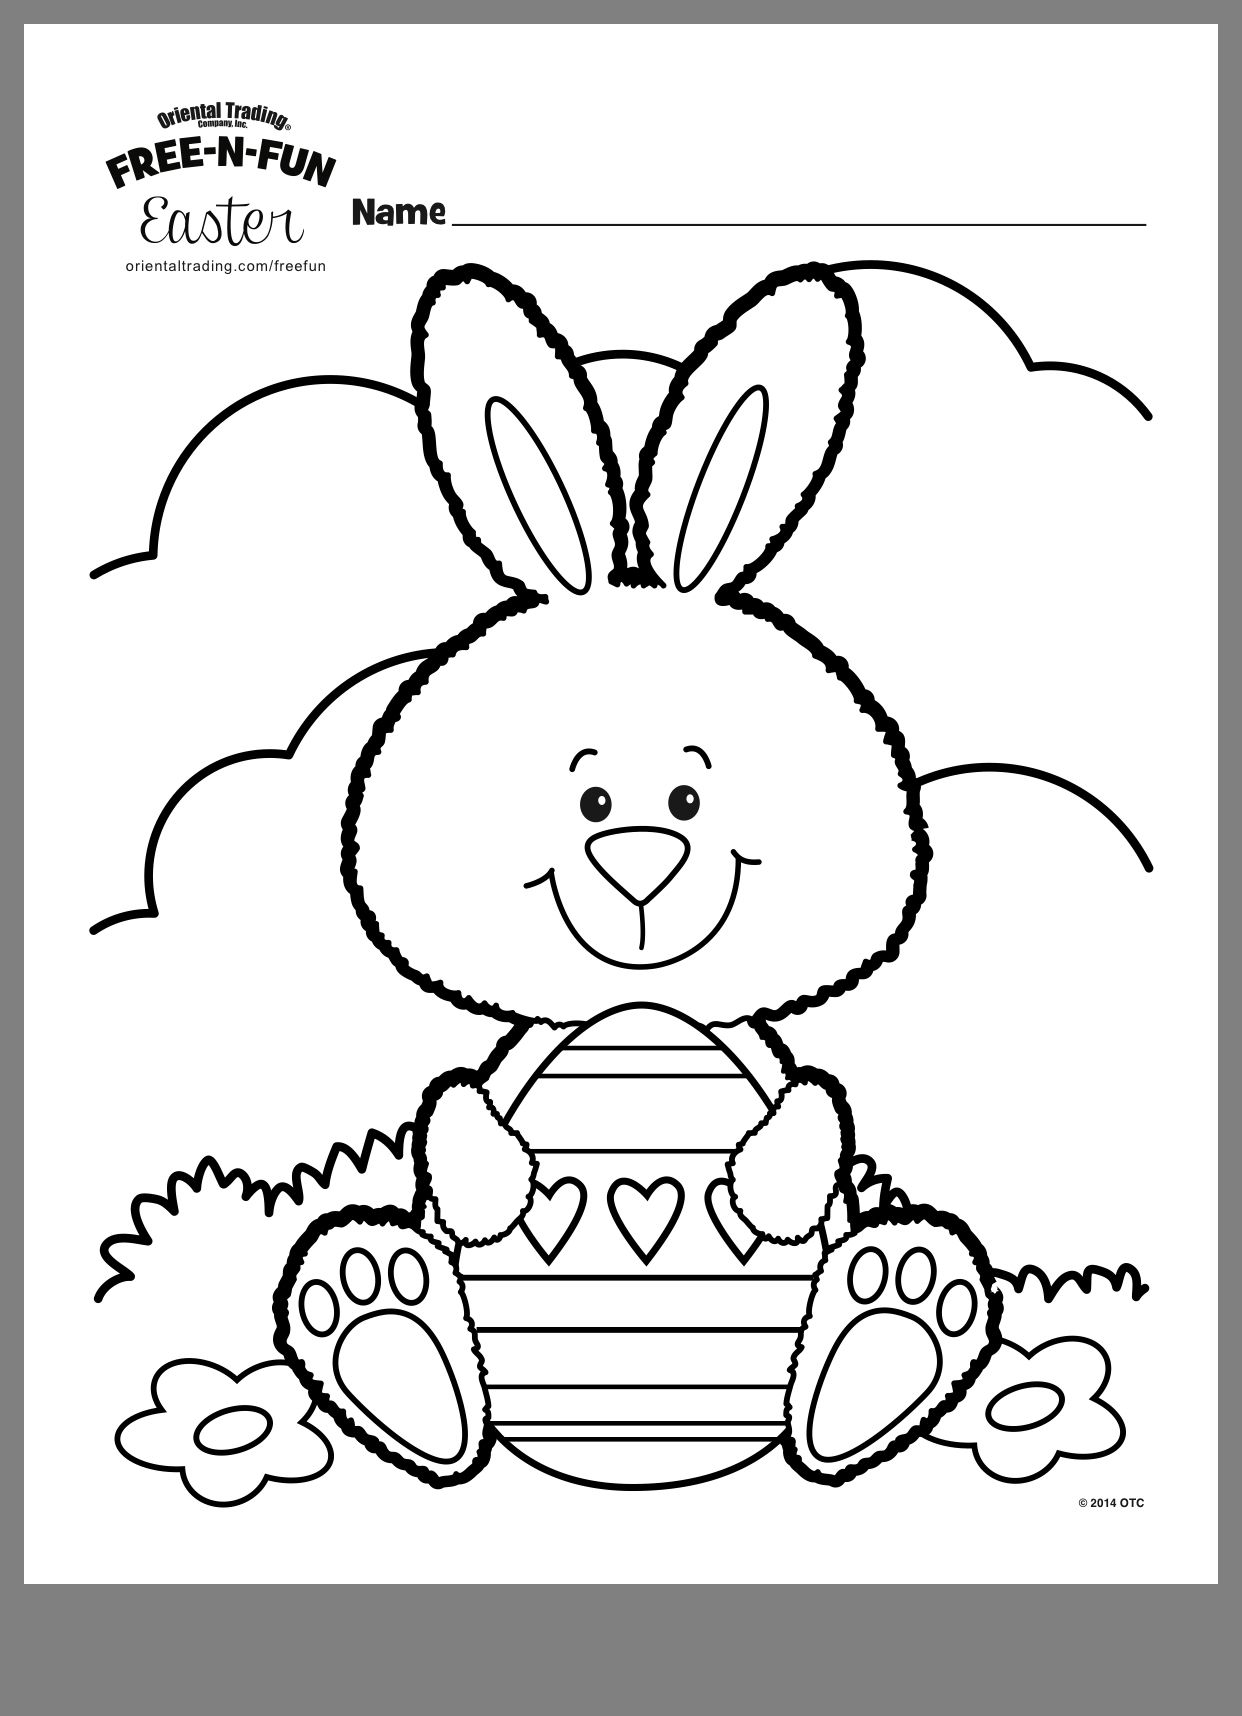 Pin By Jayde Robinson On Teatr In 2020 Bunny Coloring Pages Free Easter Coloring Pages Easter Coloring Pictures